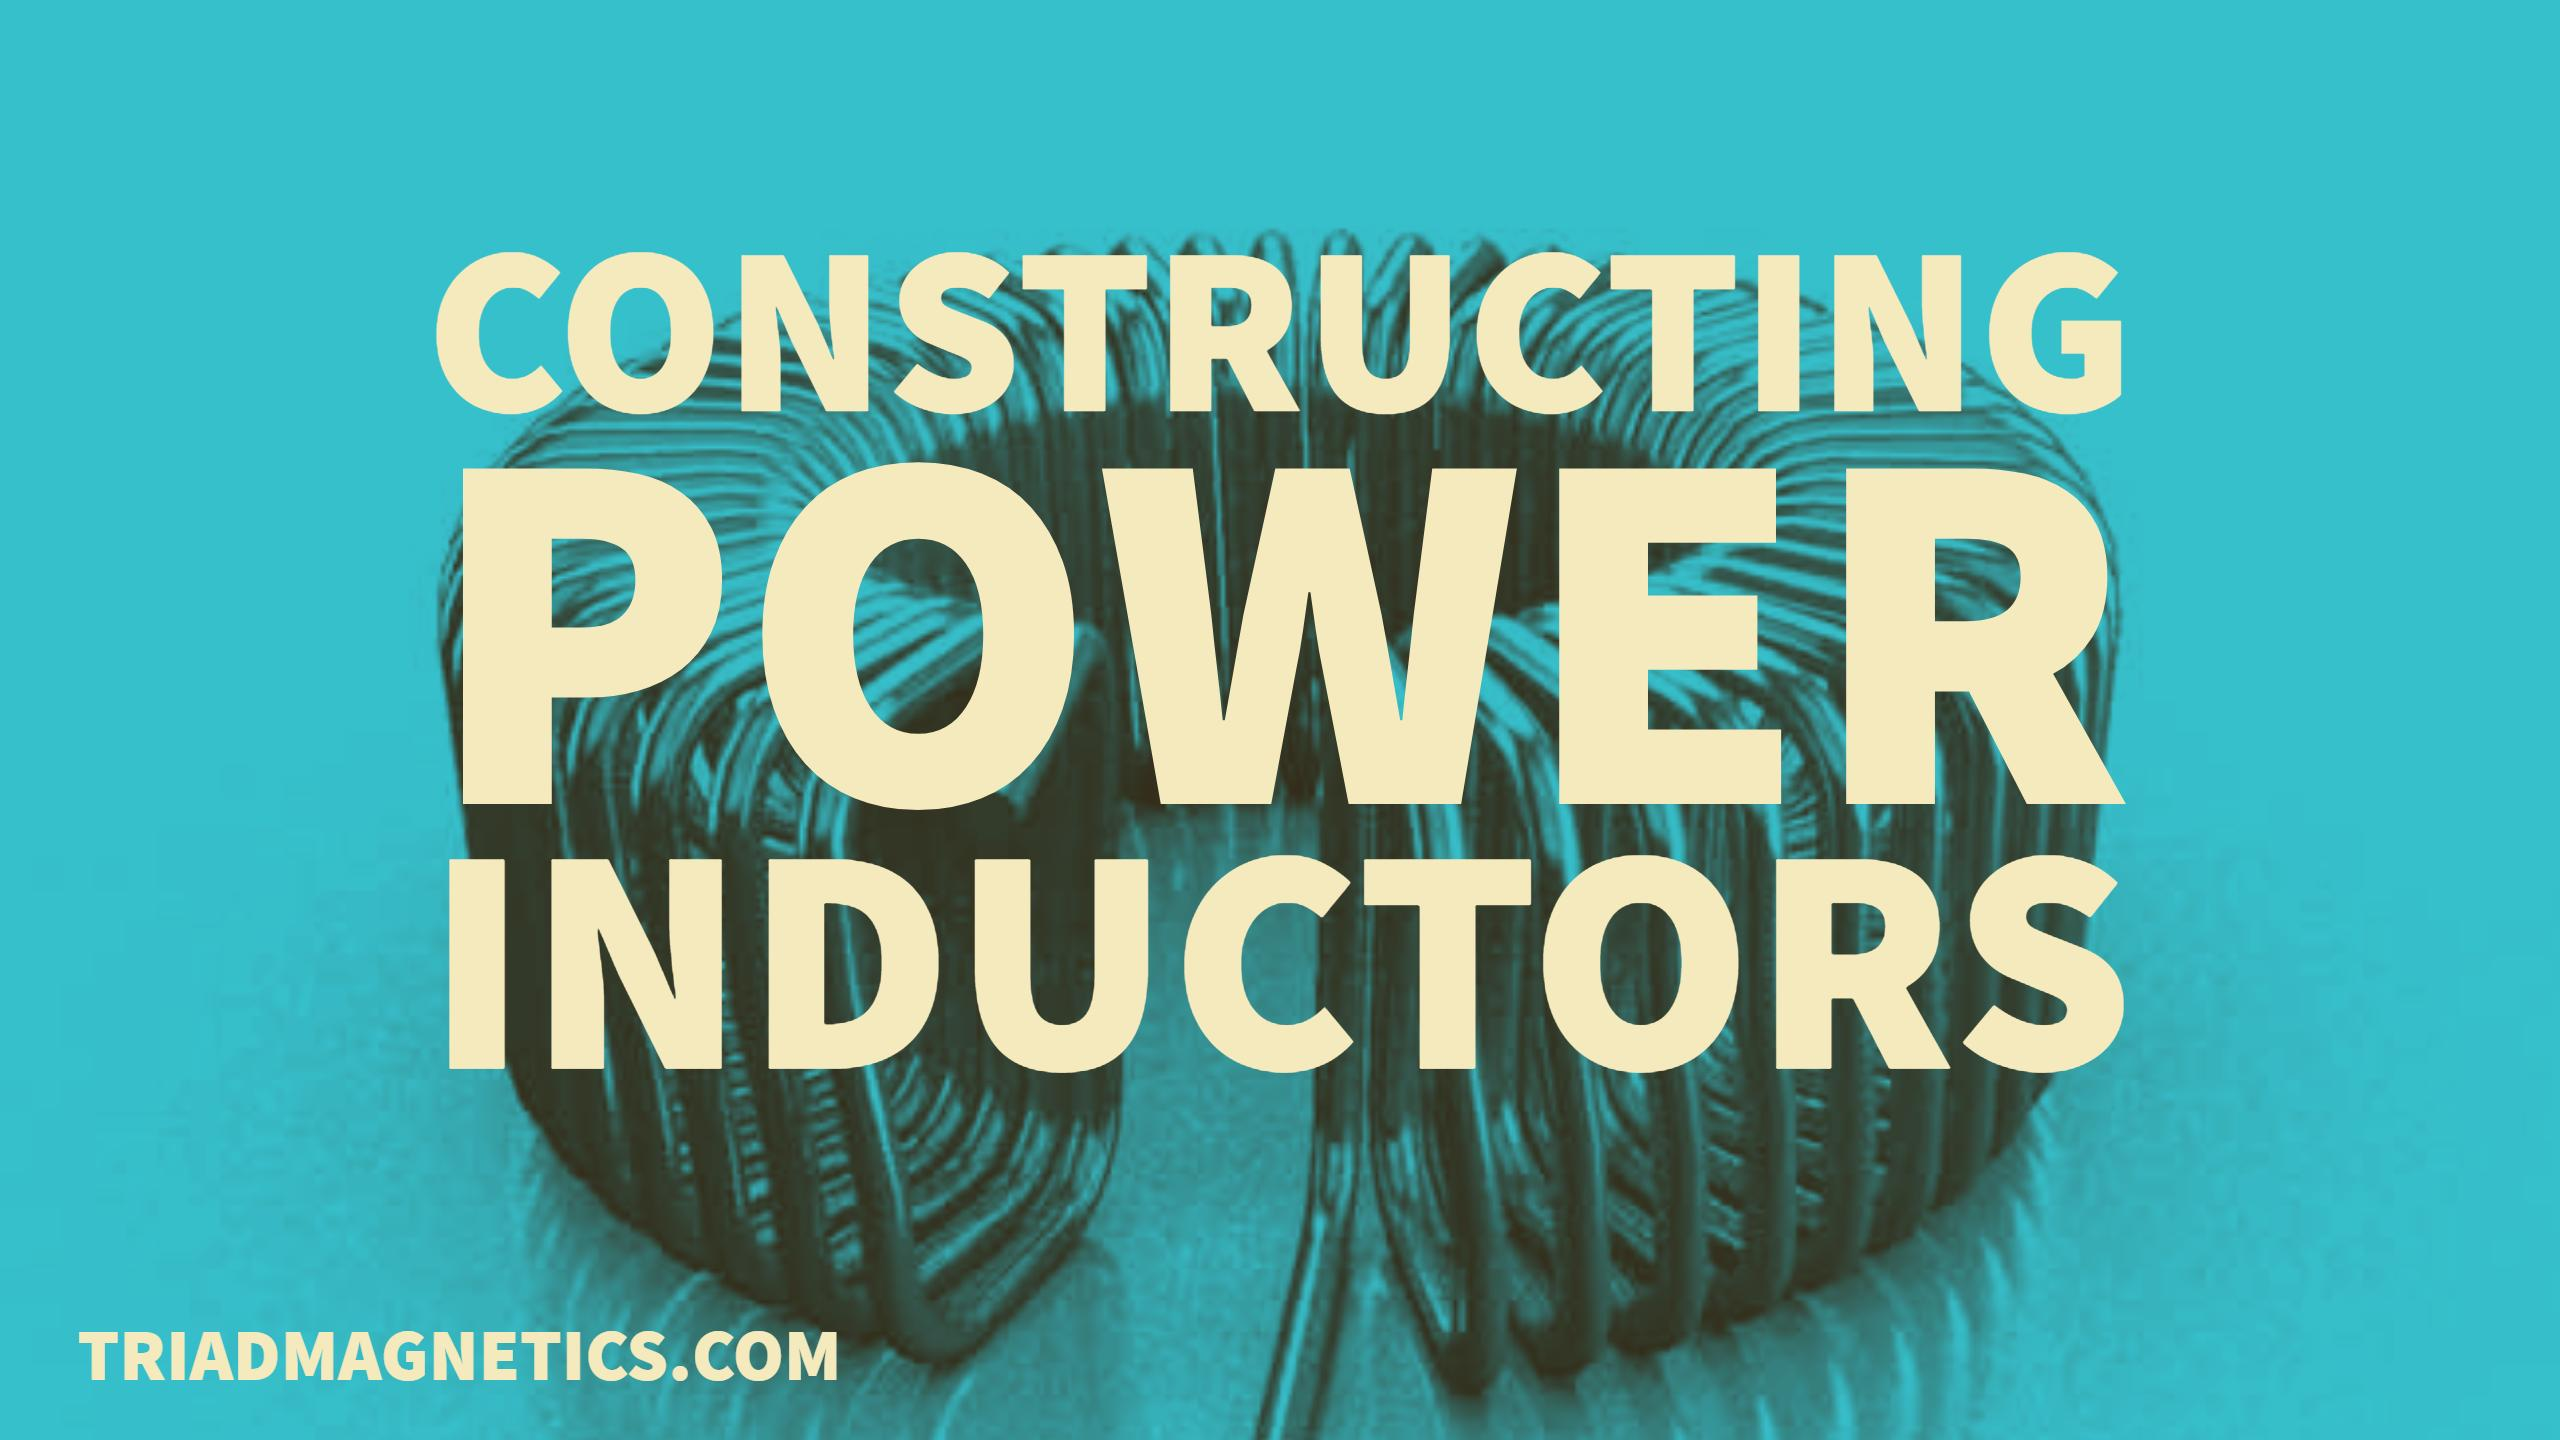 Constructing Power Inductors.jpg